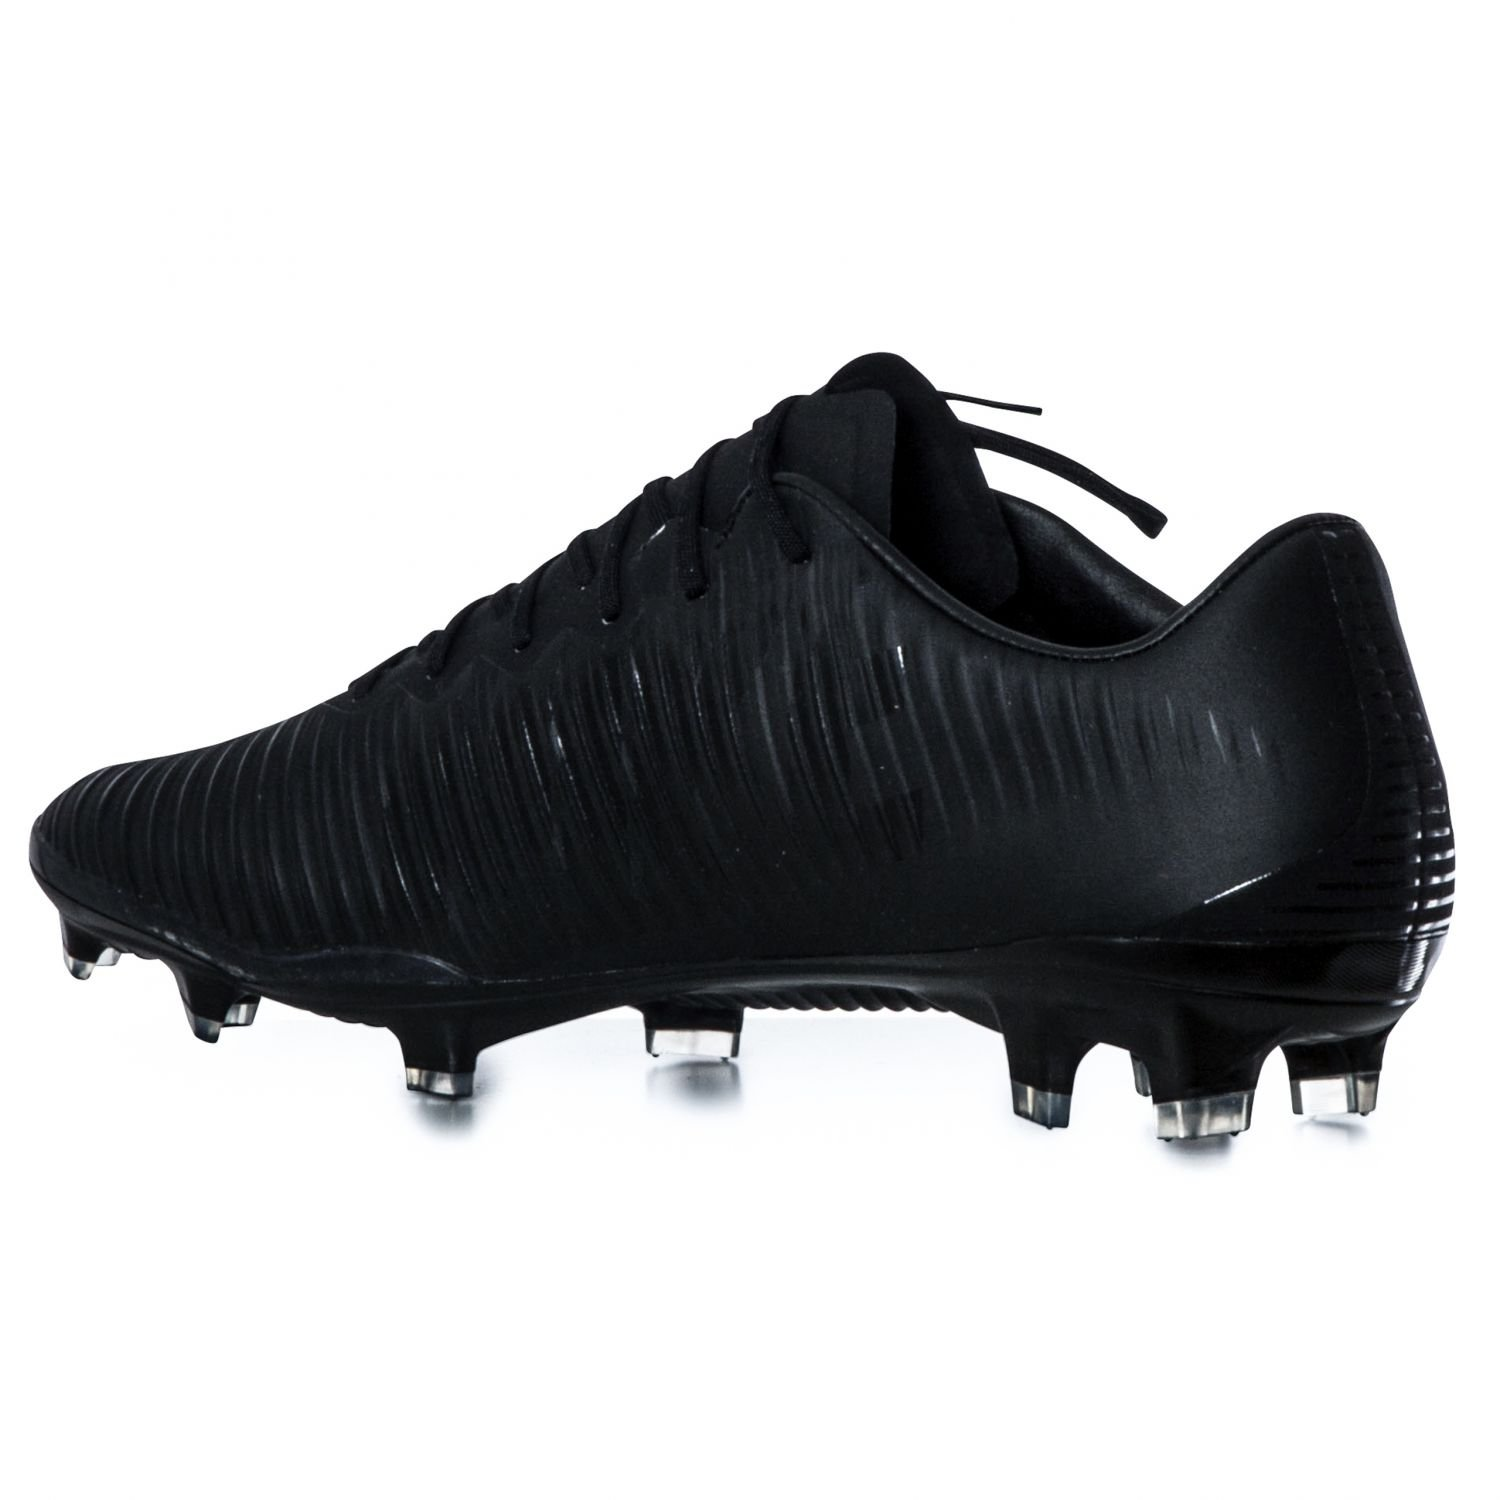 4328b45b082e Nike Men s Mercurial Vapor Xi Fg Football Boots